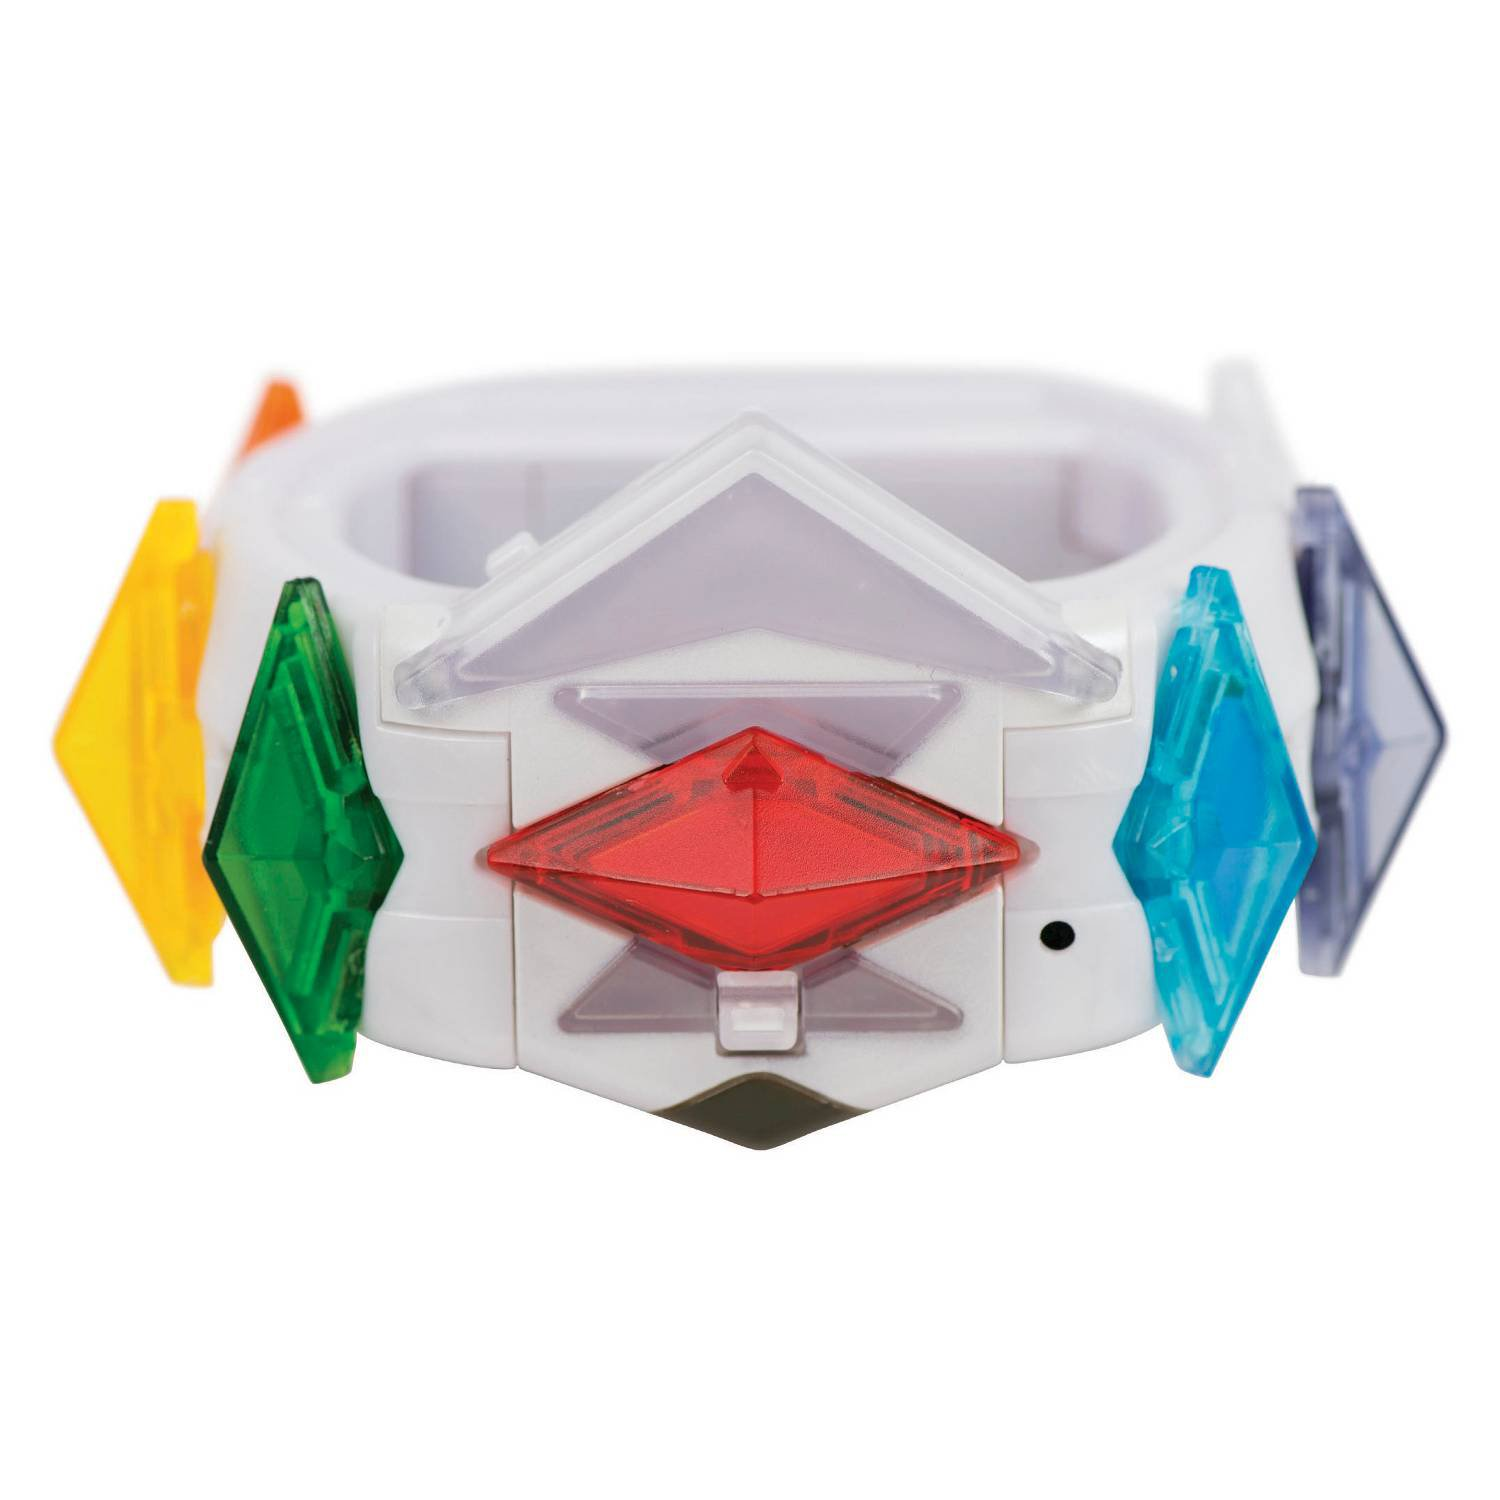 POKÉMON Z-RING and Z-CRYSTALS. Compatible with The Pokémon Sun and Pokémon Moon Video Game.